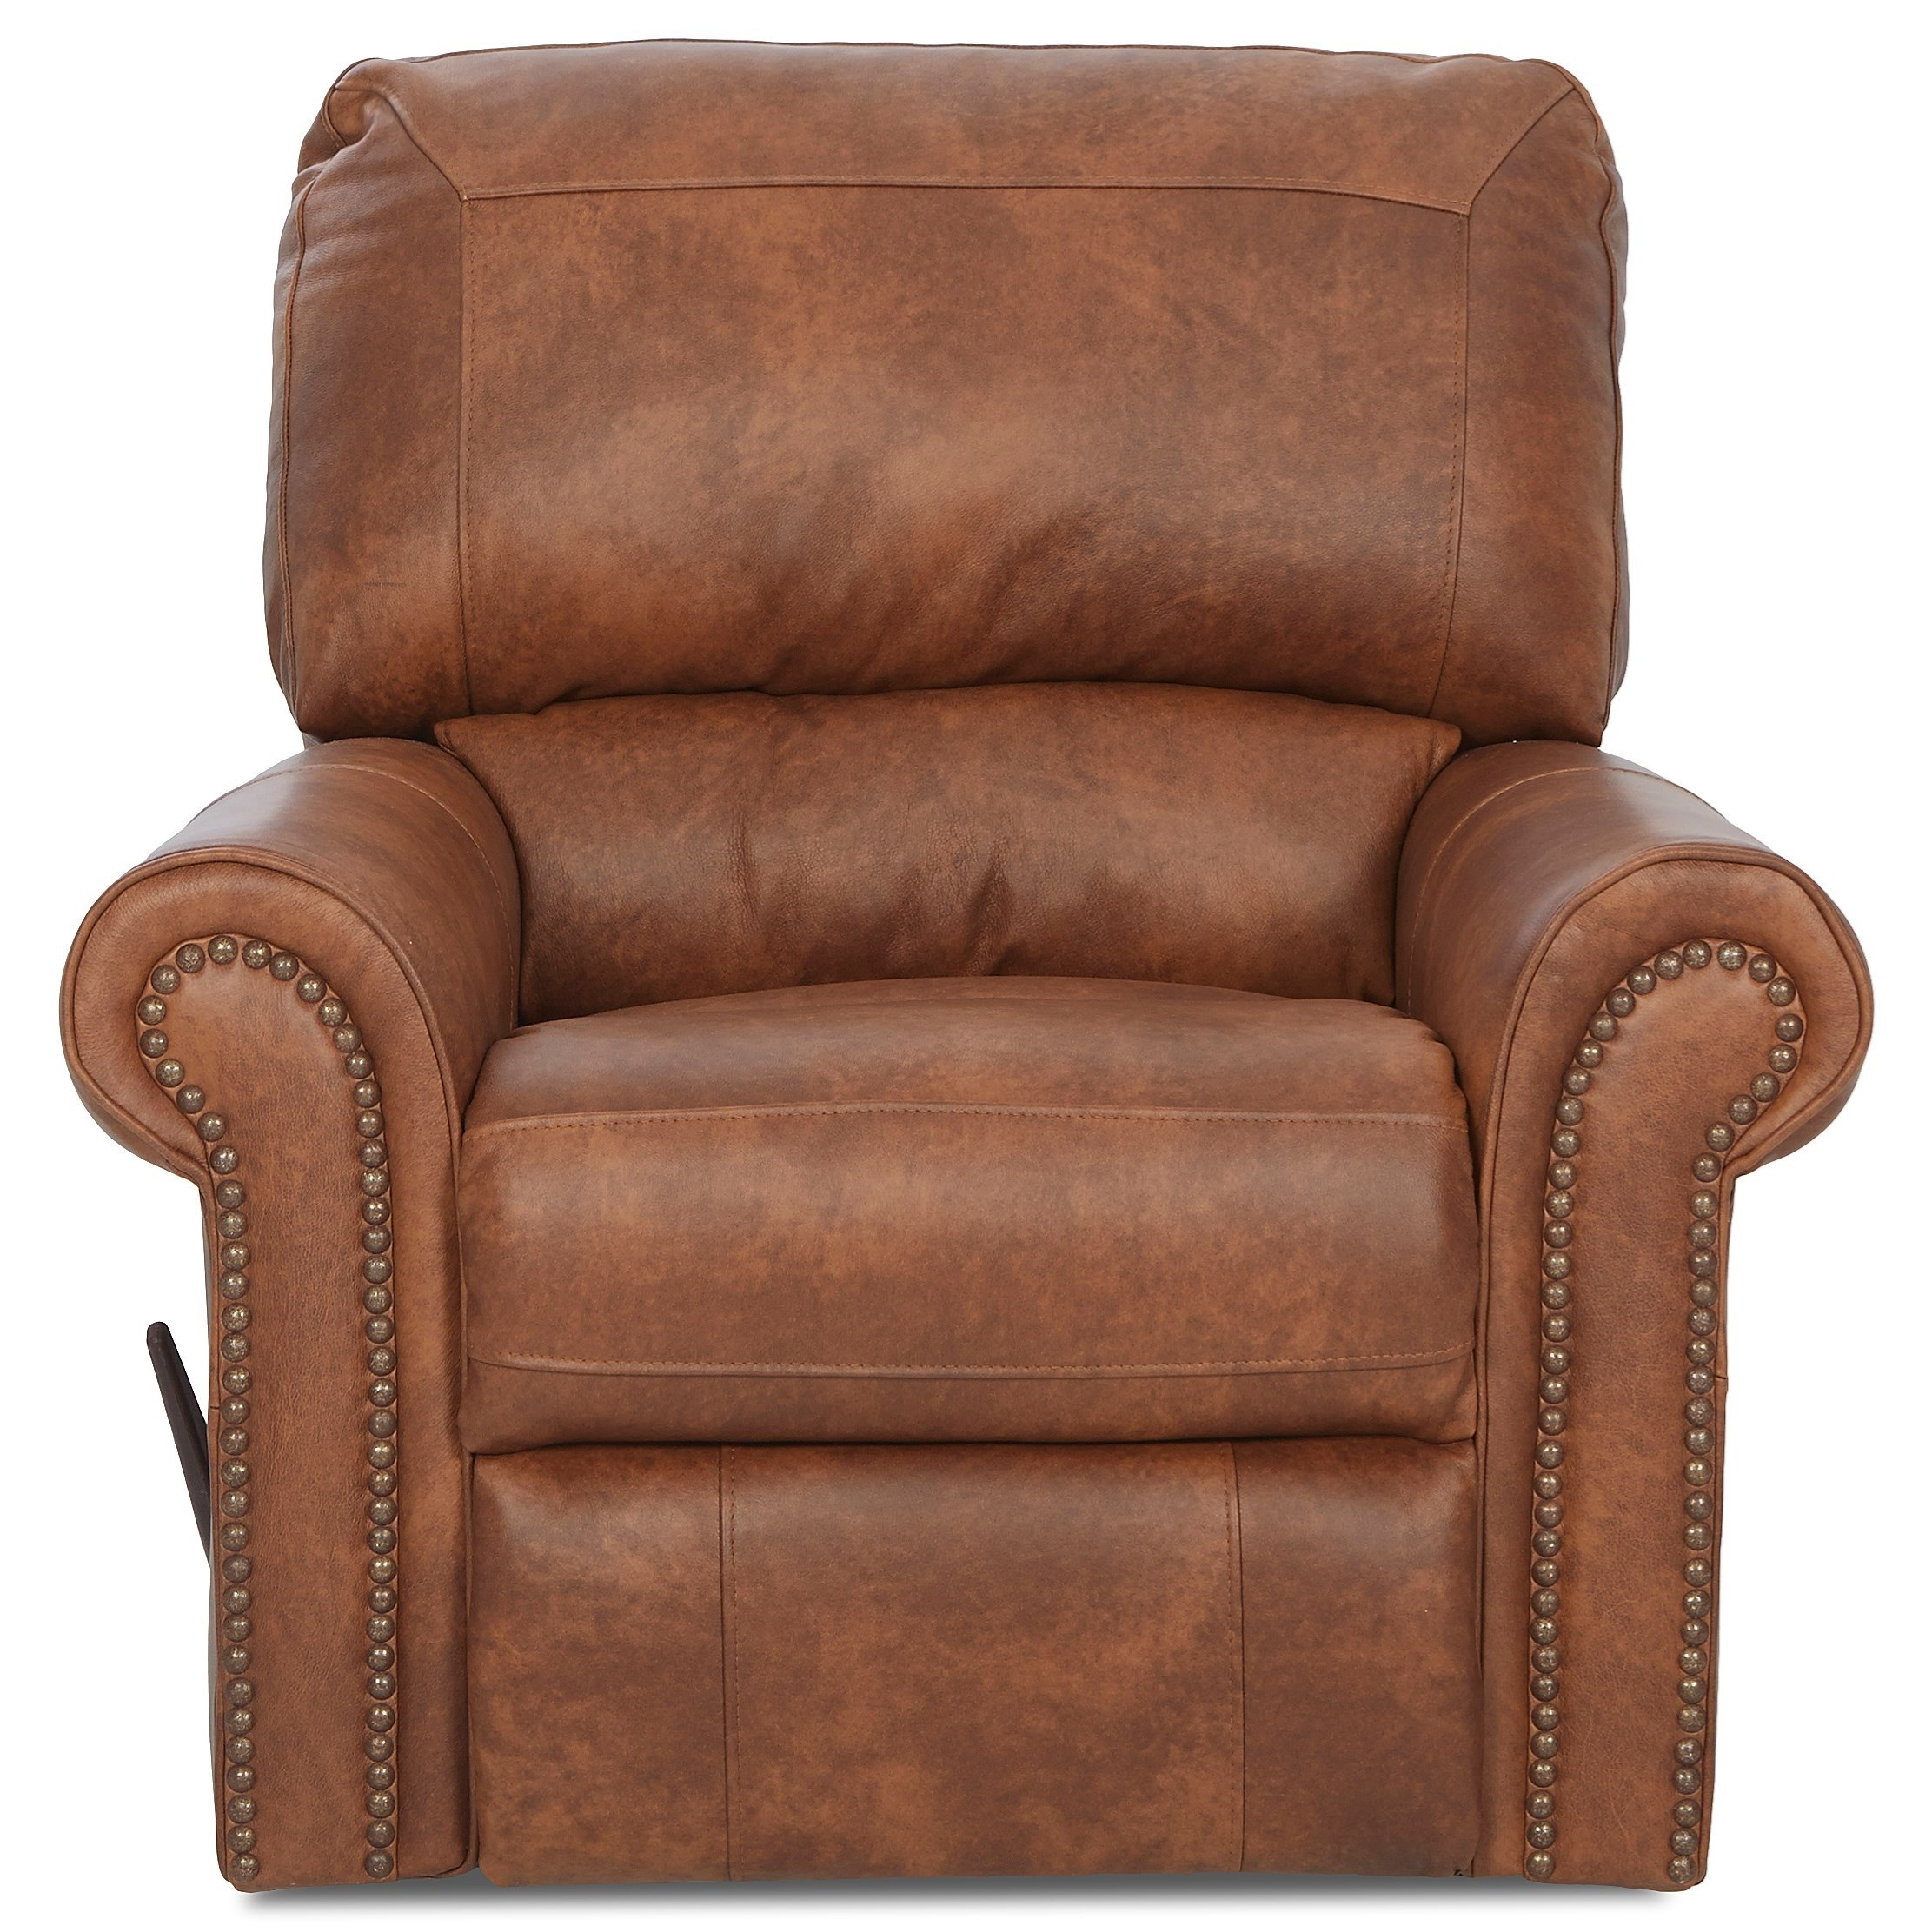 Ashley Furniture Horseheads Ny: Klaussner Savannah Swivel Rocker Recliner With Rolled Arms